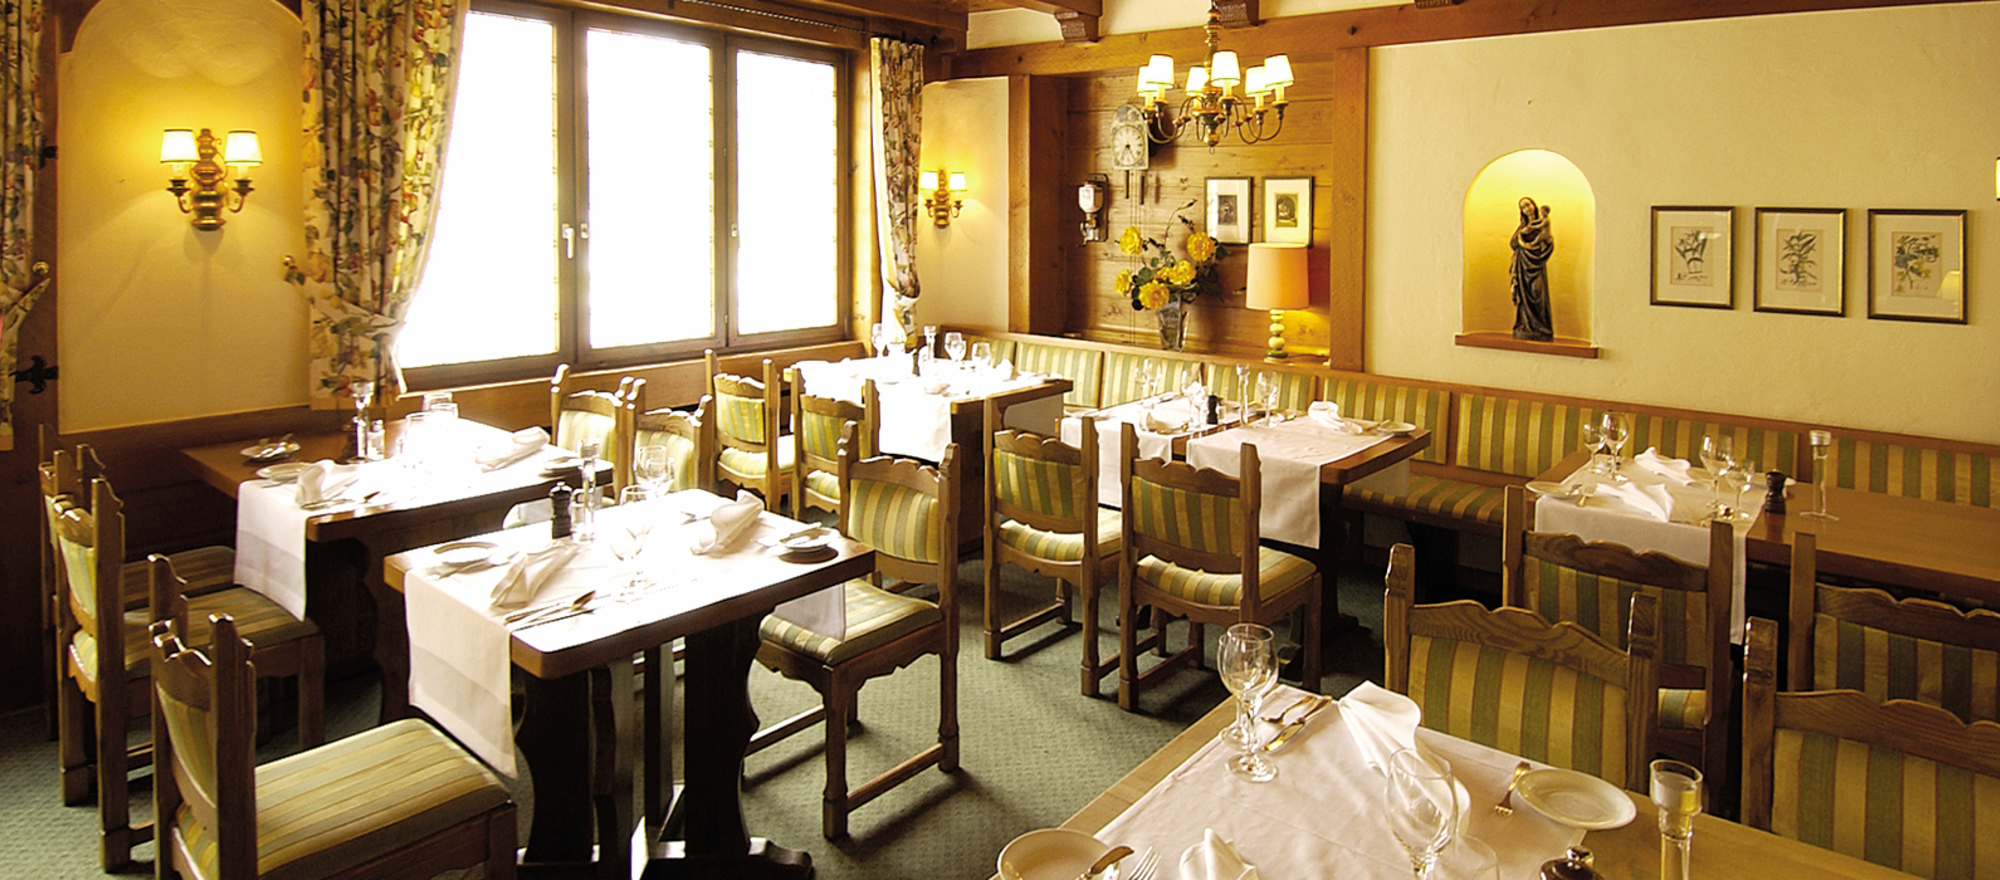 Perfect pleasure in a homely atmosphere at the restaurant in Ringhotel Zum Goldenen Ochsen in Stockach, 4 star hotel at Lake Constance